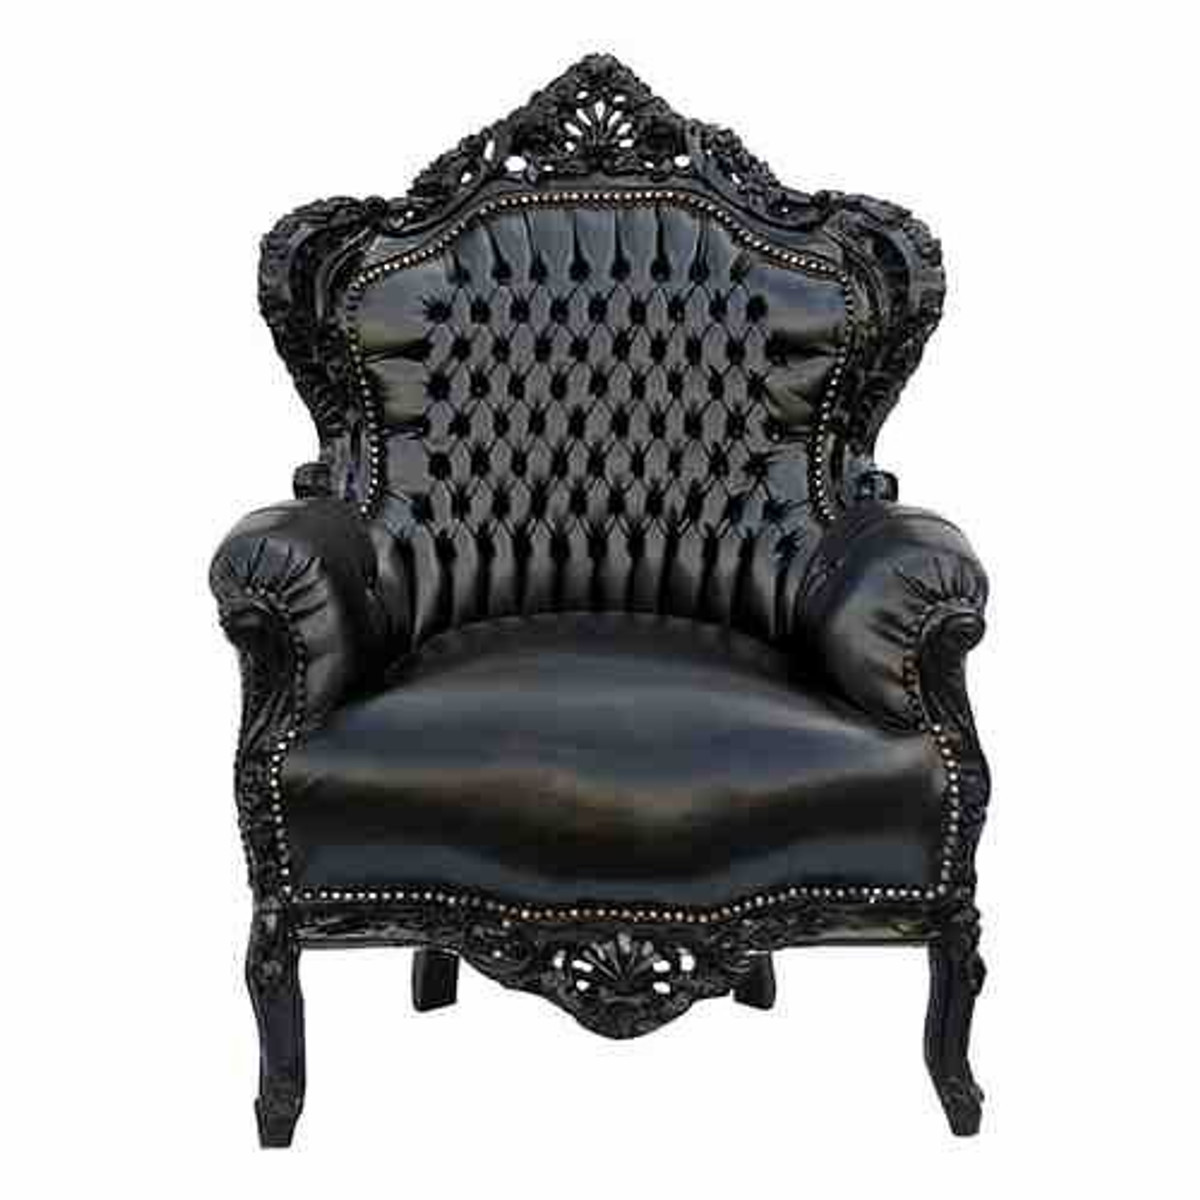 casa padrino barock sessel king schwarz schwarz lederoptik sessel barock sessel king. Black Bedroom Furniture Sets. Home Design Ideas